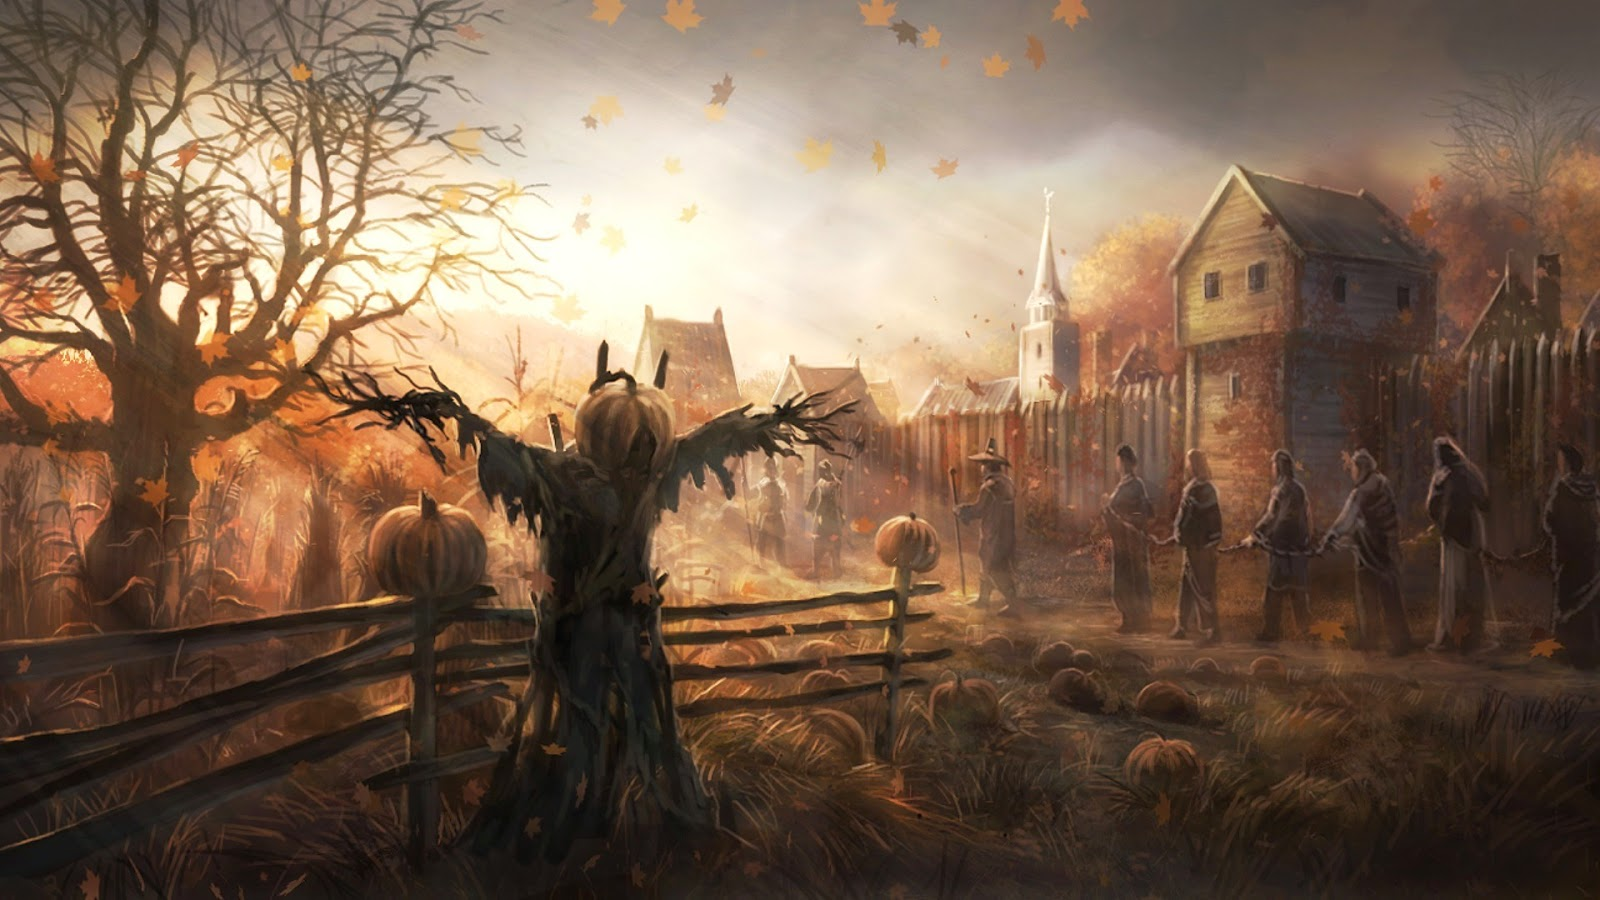 Halloween-day-celebration-village-party-in-field-HD-image.jpg